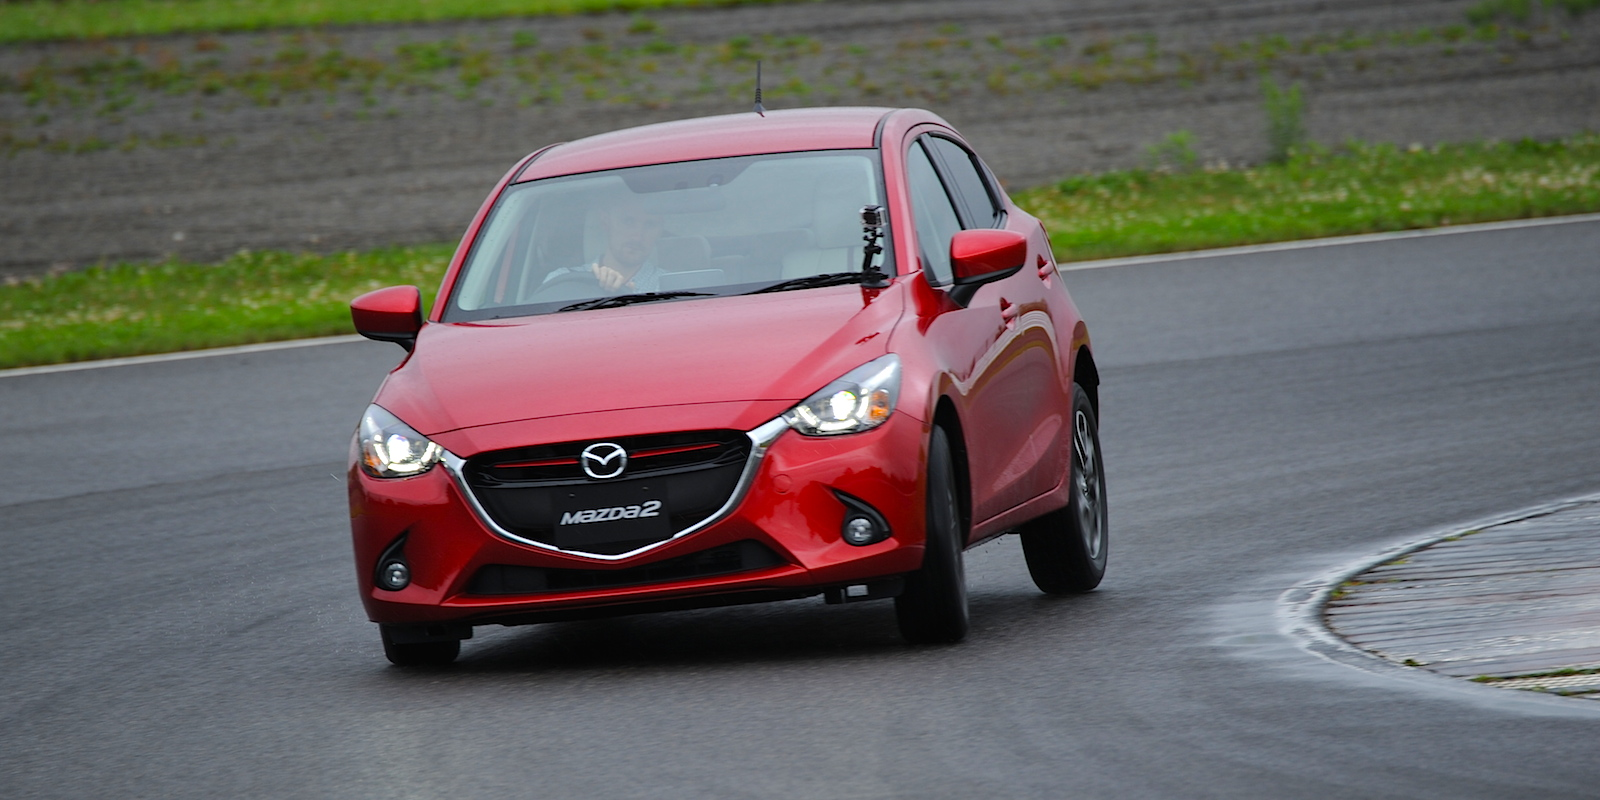 New Honda Sports Car 2017 >> 2015 Mazda 2 Review - photos | CarAdvice